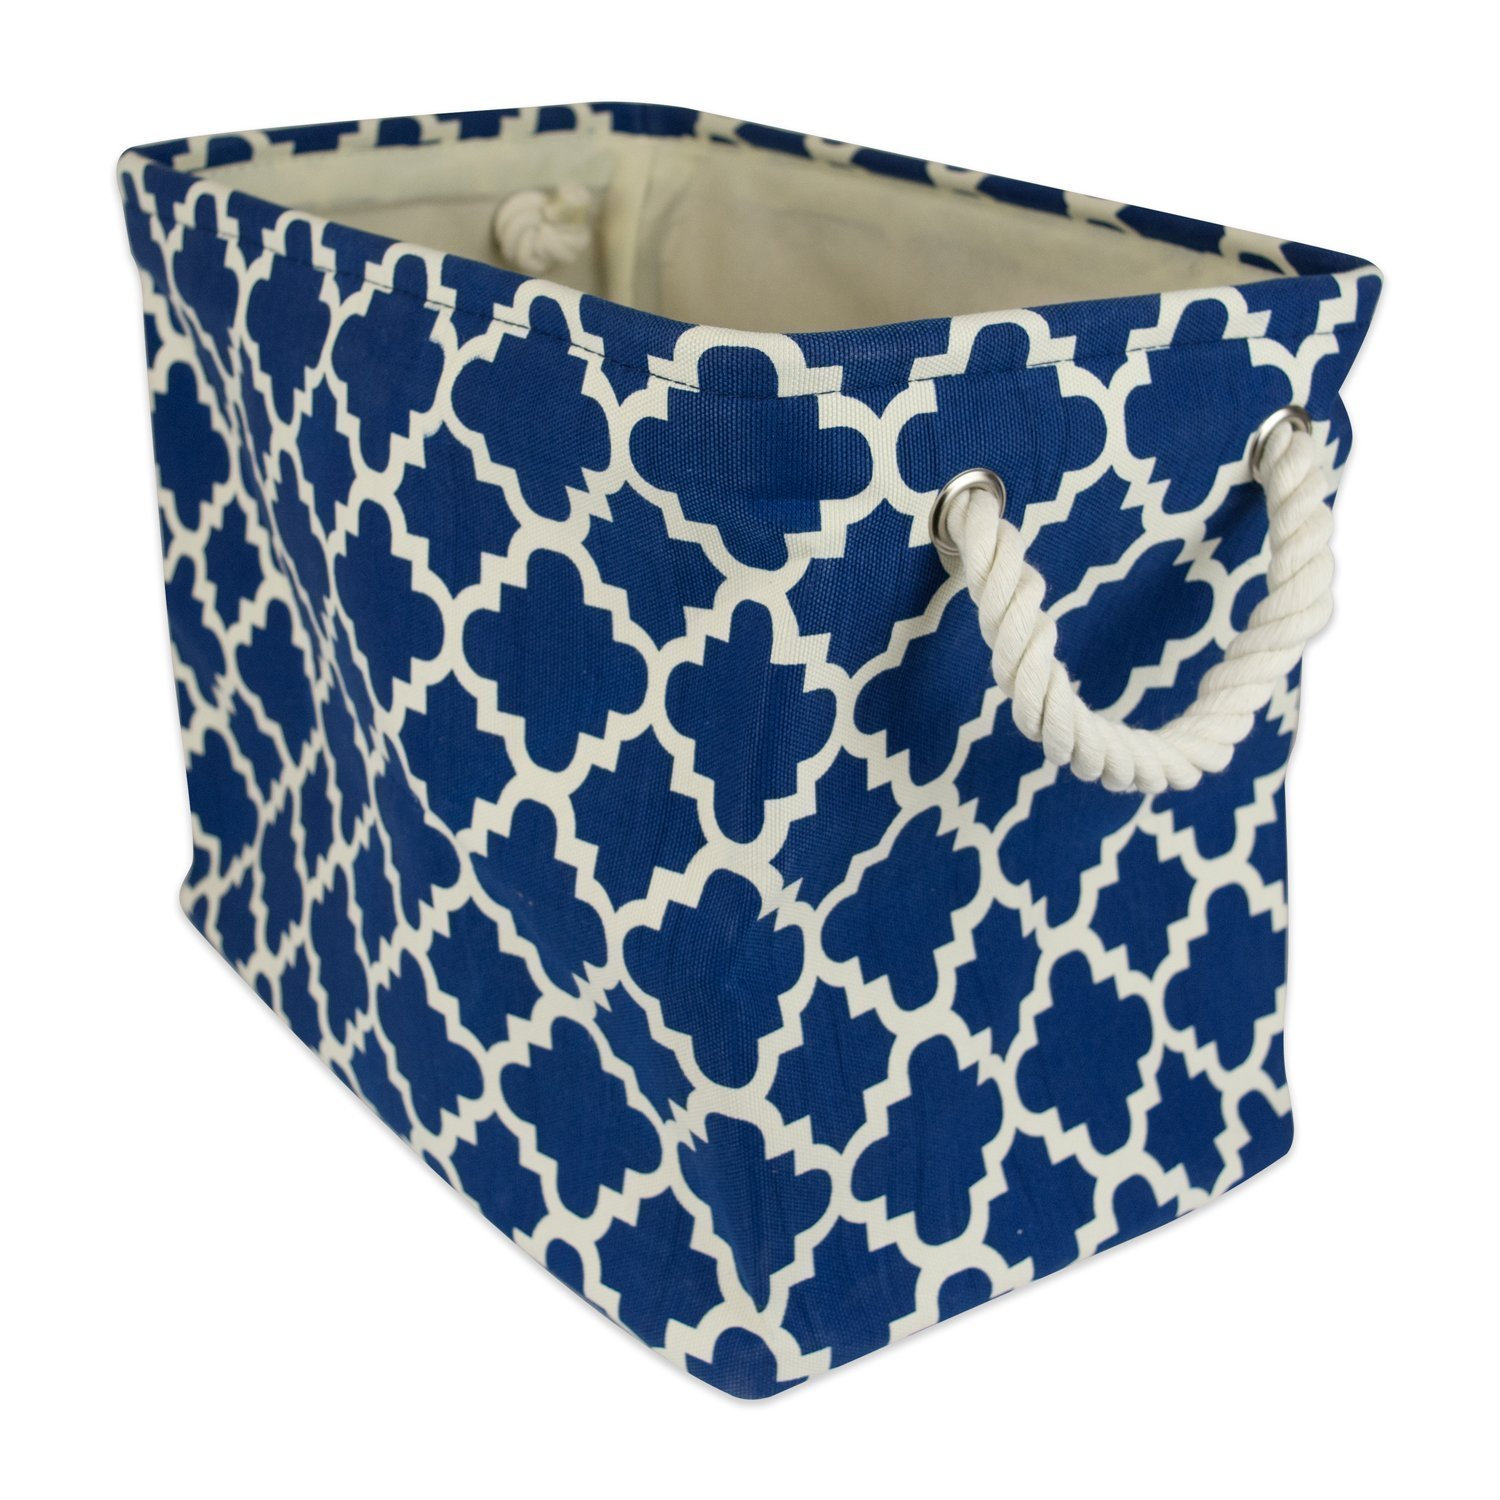 """DII Collapsible Polyester Storage Basket or Bin with Durable Cotton Handles, Home Organizer Solution for Office, Bedroom, Closet, Toys, Laundry (Small – 14x8x9""""), Navy Lattice"""